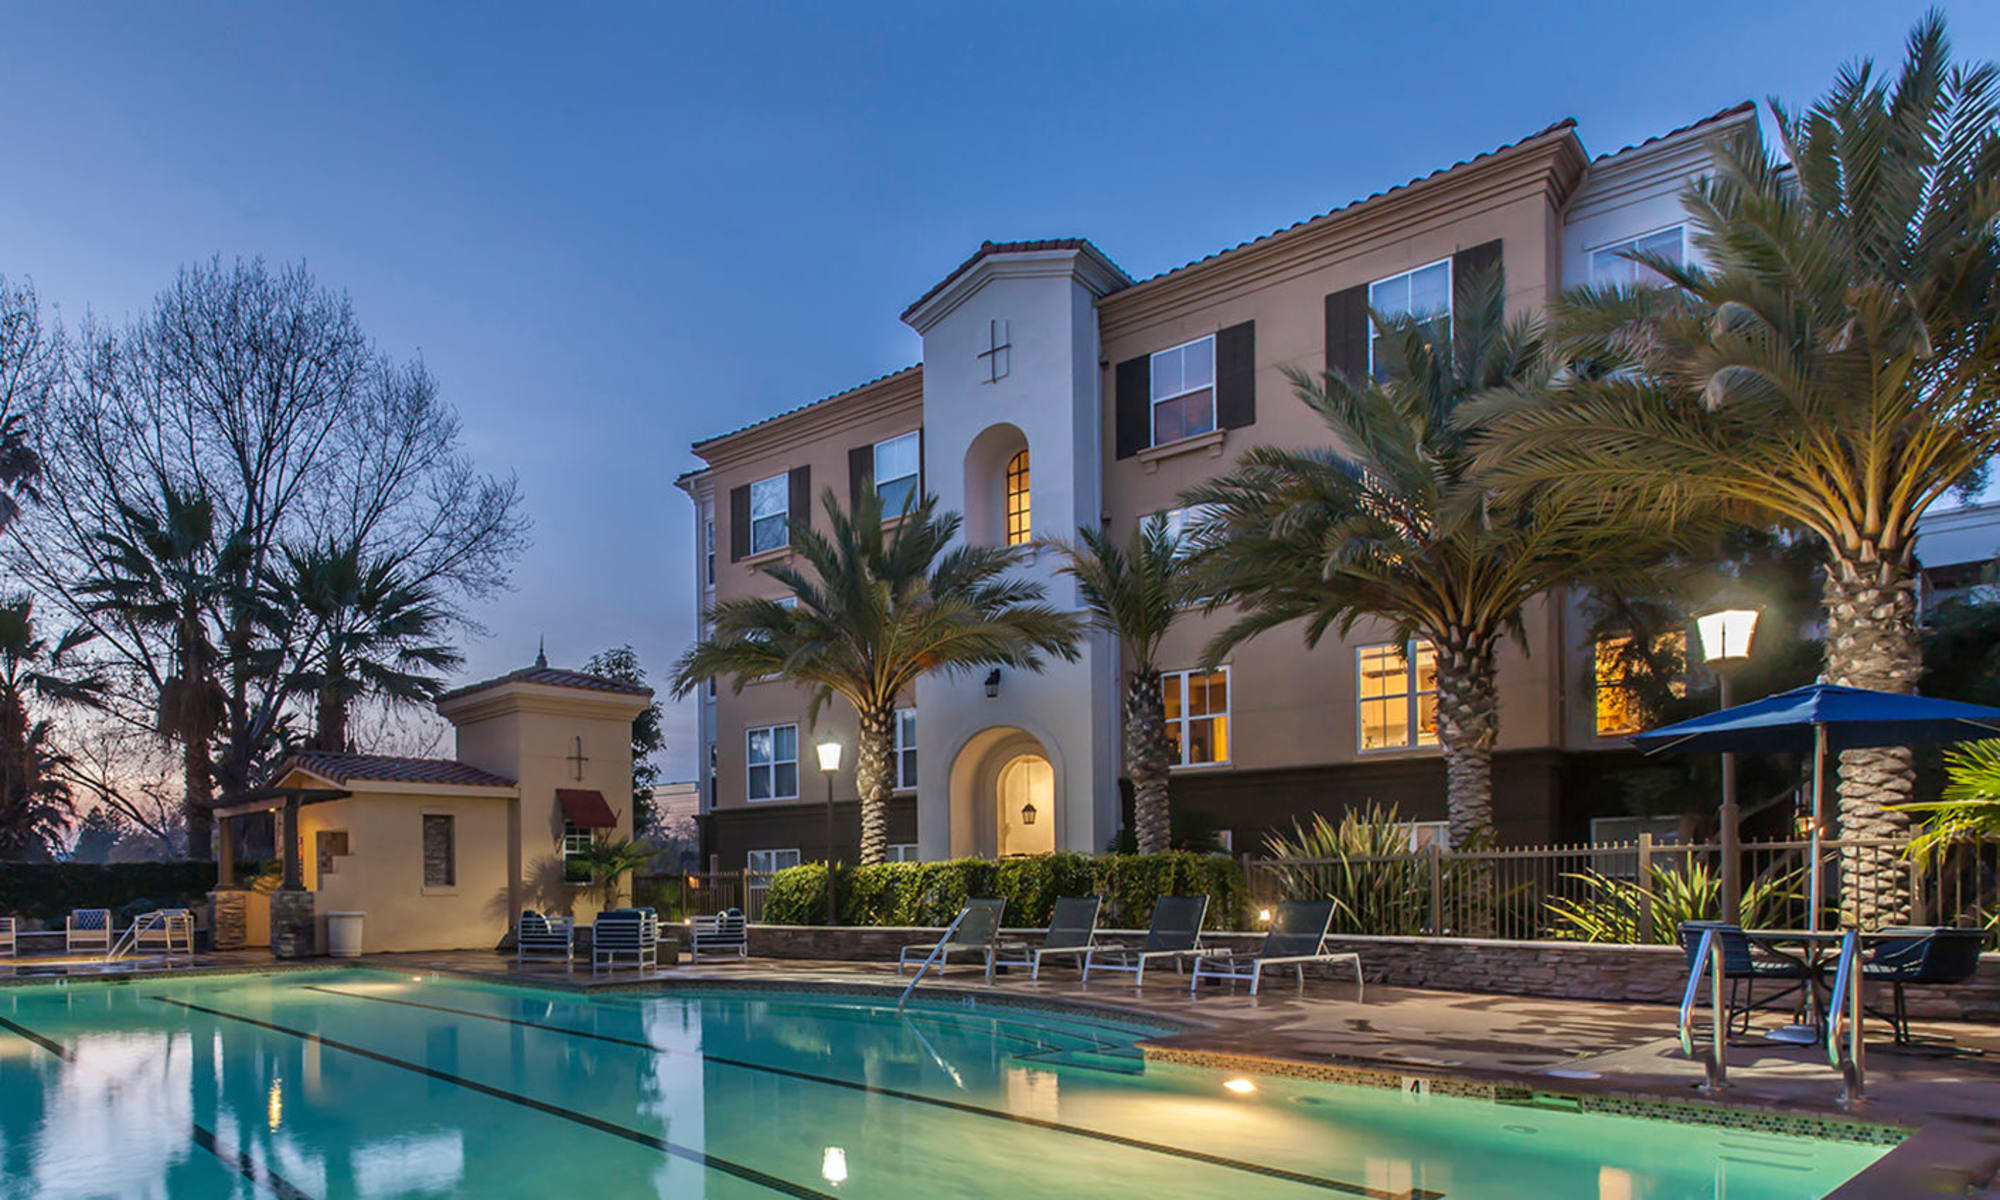 Apartments and beautiful swimmg pool at Park Central in Concord, California